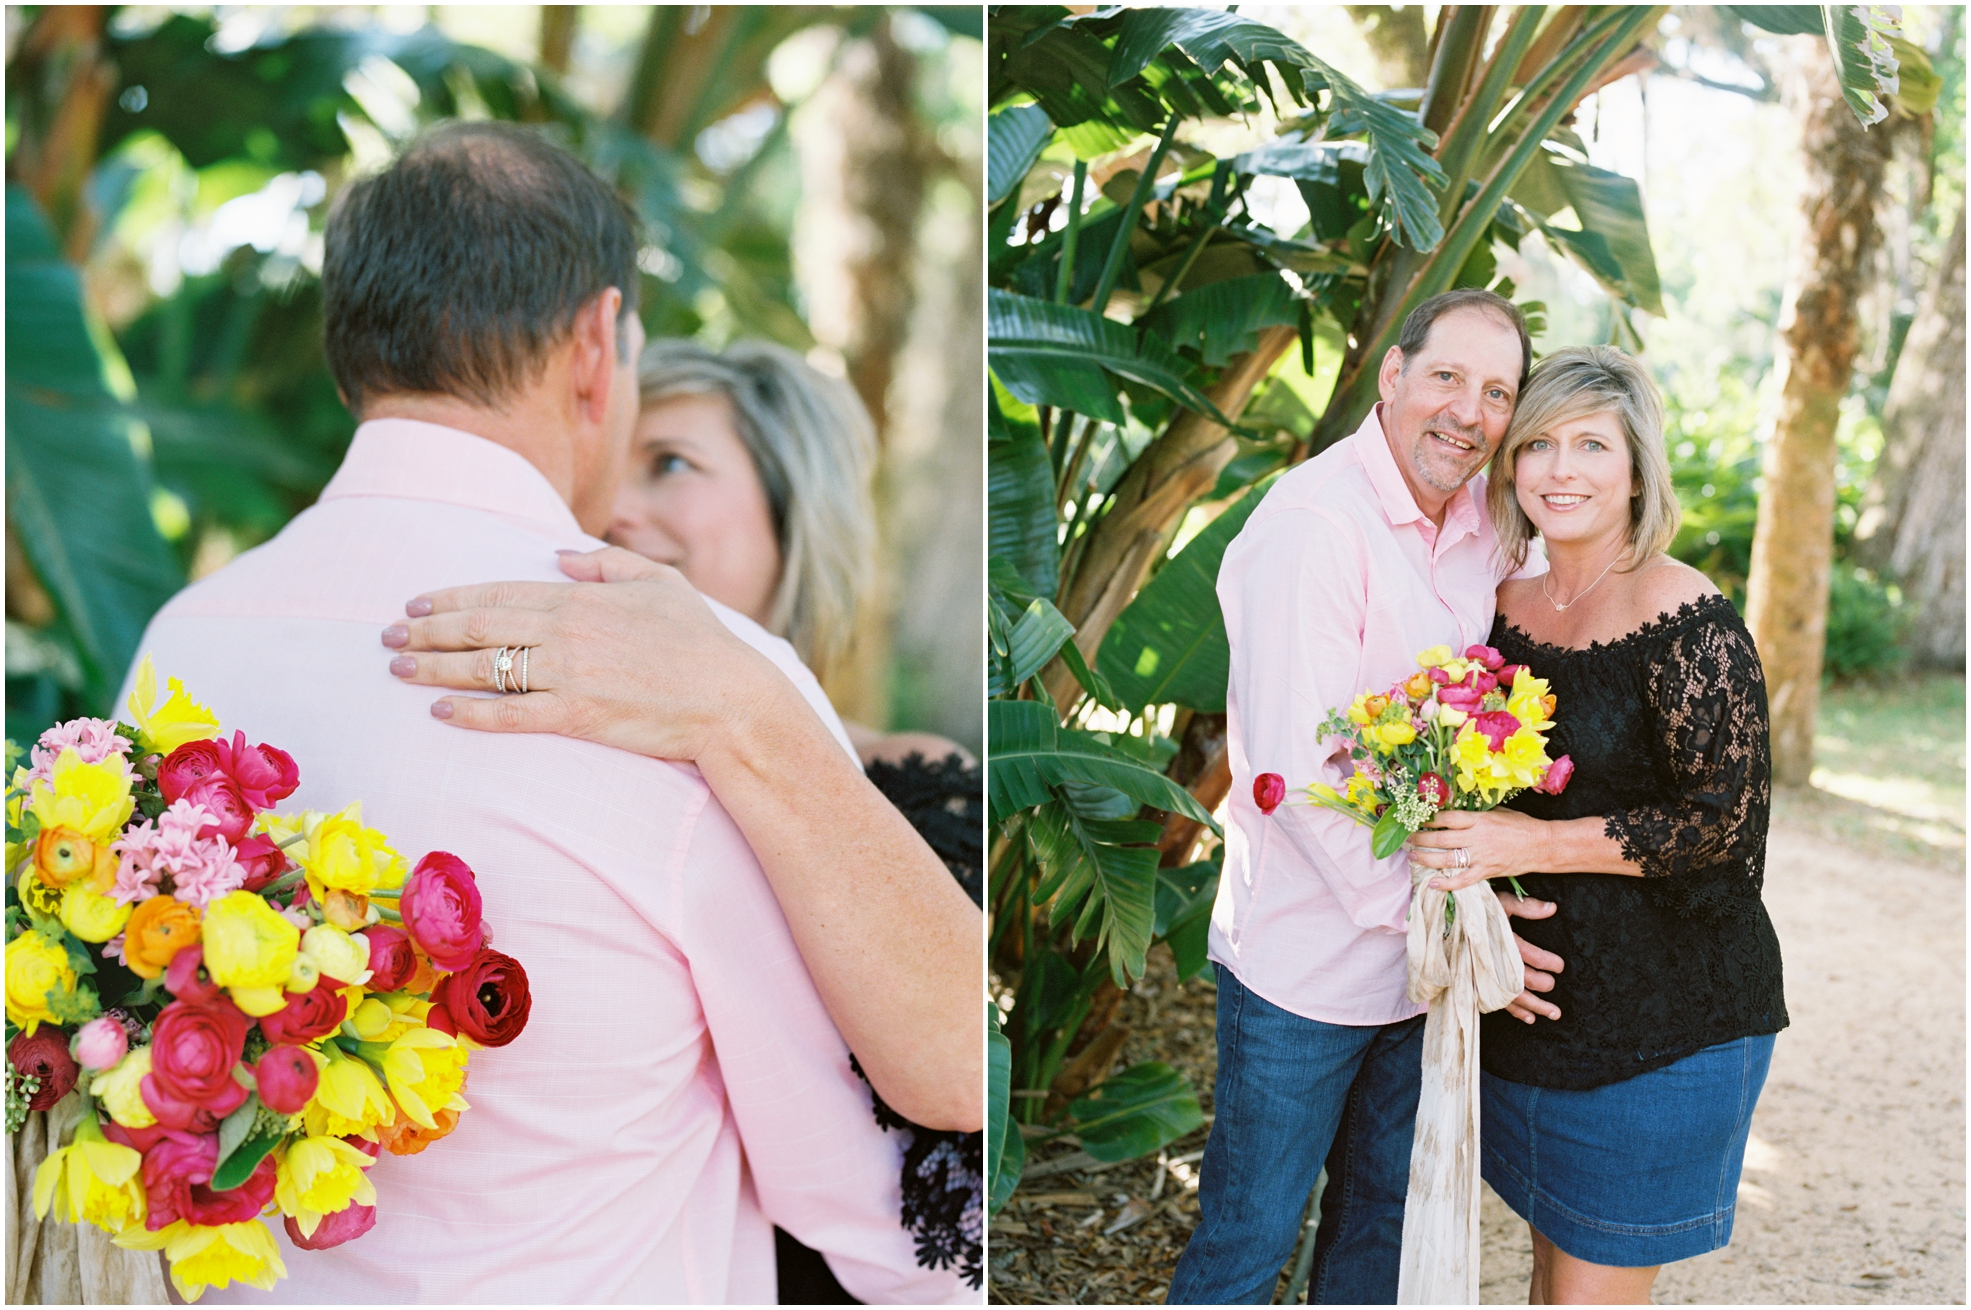 Lisa Silva Photography- Jacksonville, St. Augustine, Amelia Island, Ponte Vedra Beach, North East Florida Fine Art Film Photographer- Anniversary Session at Washington Oaks in Palm Coast, Florida_0050.jpg